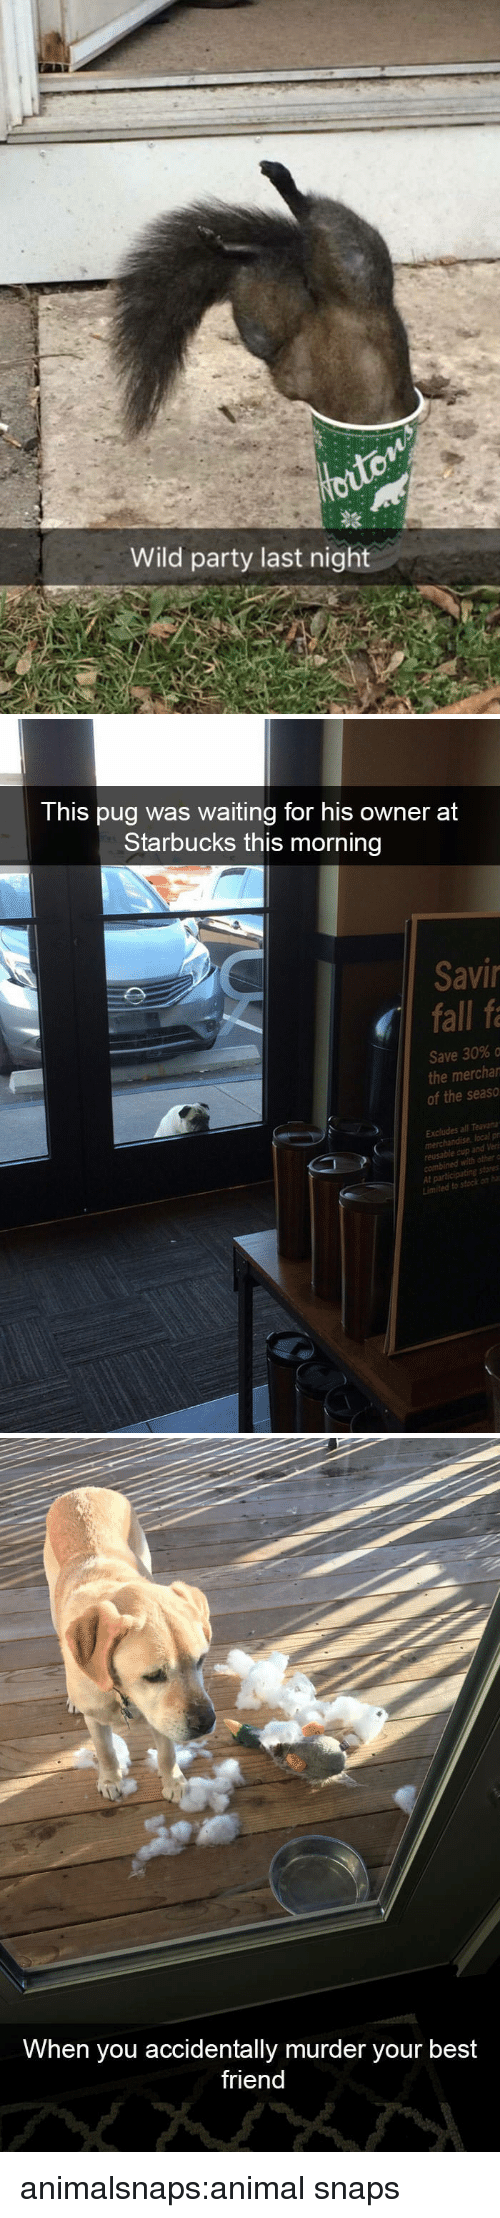 Best Friend, Fall, and Party: Wild party last night   This pug was waiting for his owner at  Starbucks this morning  Savi  fall fa  Save 30% o  the mercha  of the seaso  Excludes all Teava  merchandise local pr  eusable cup and Veri  t participating stores  Limited to  stockon   When you accidentally murder your best  friend animalsnaps:animal snaps